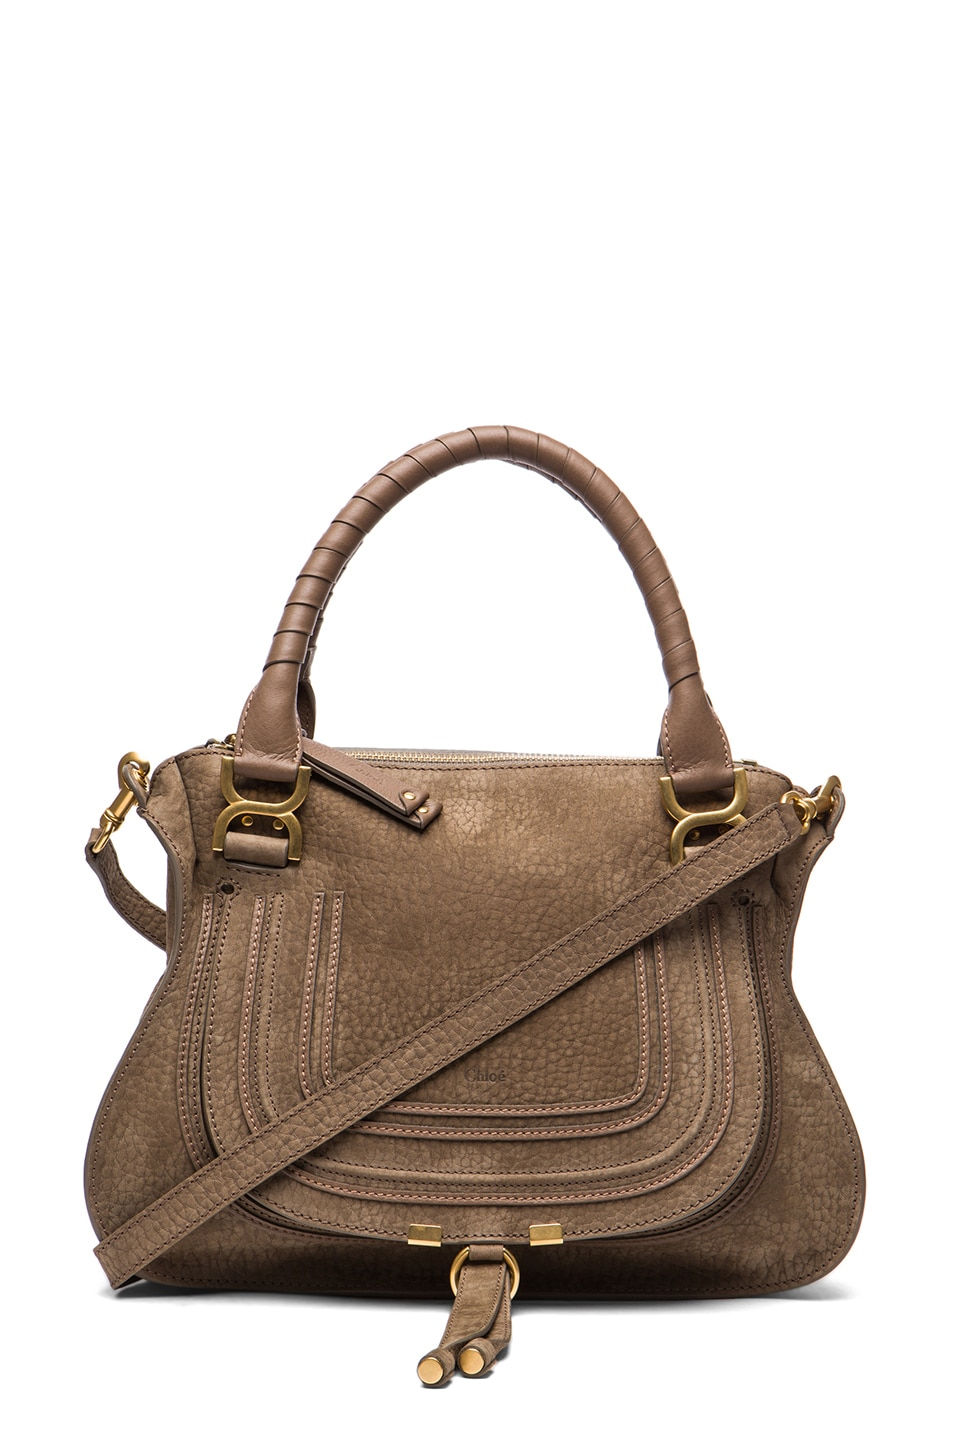 Image 1 of Chloe Medium Marcie Shoulder Bag in Moss Touch